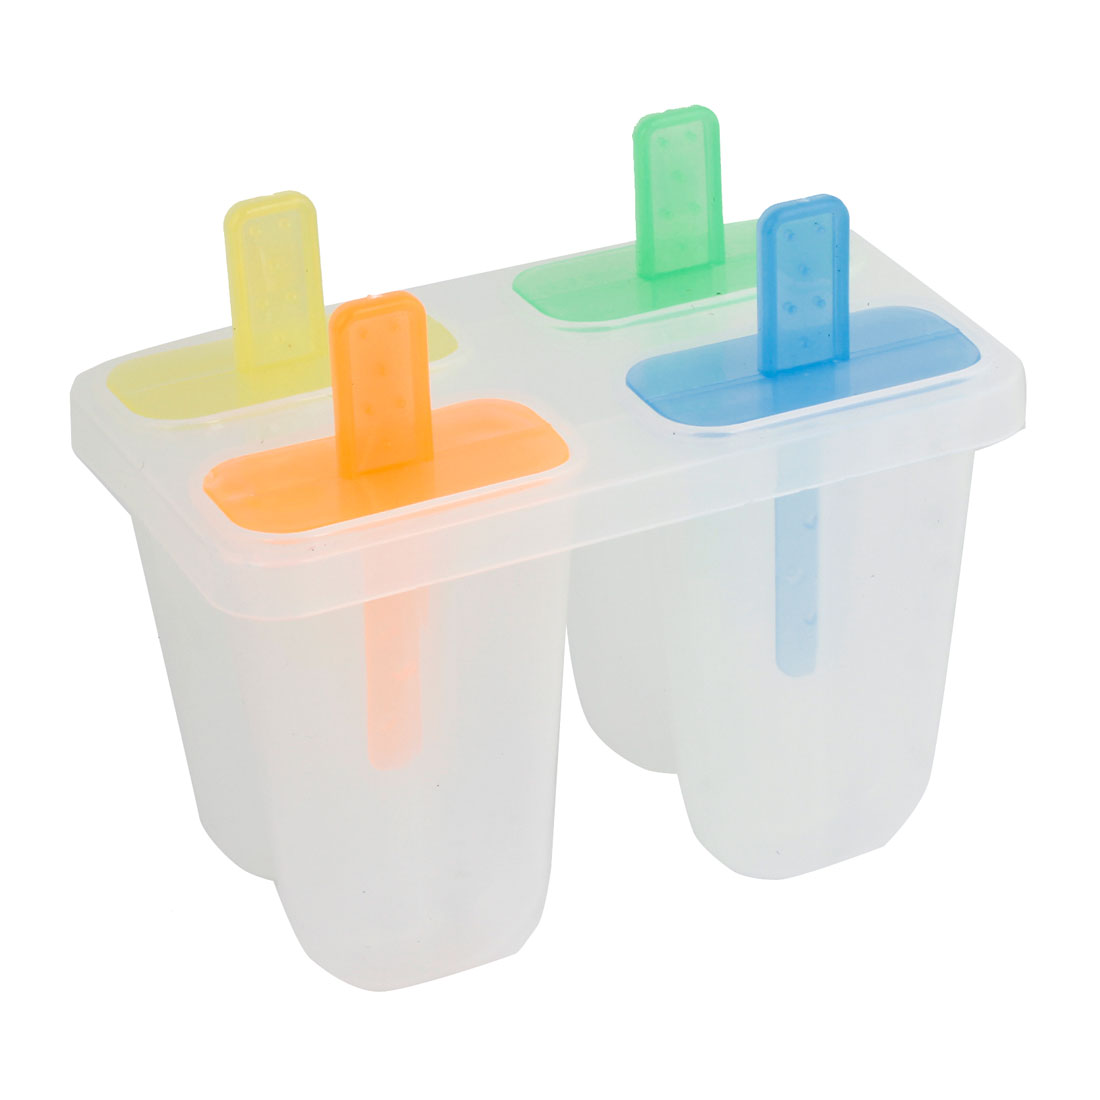 Clear Plastic 4 Compartments DIY Ice Cream Popsicle Mould Box